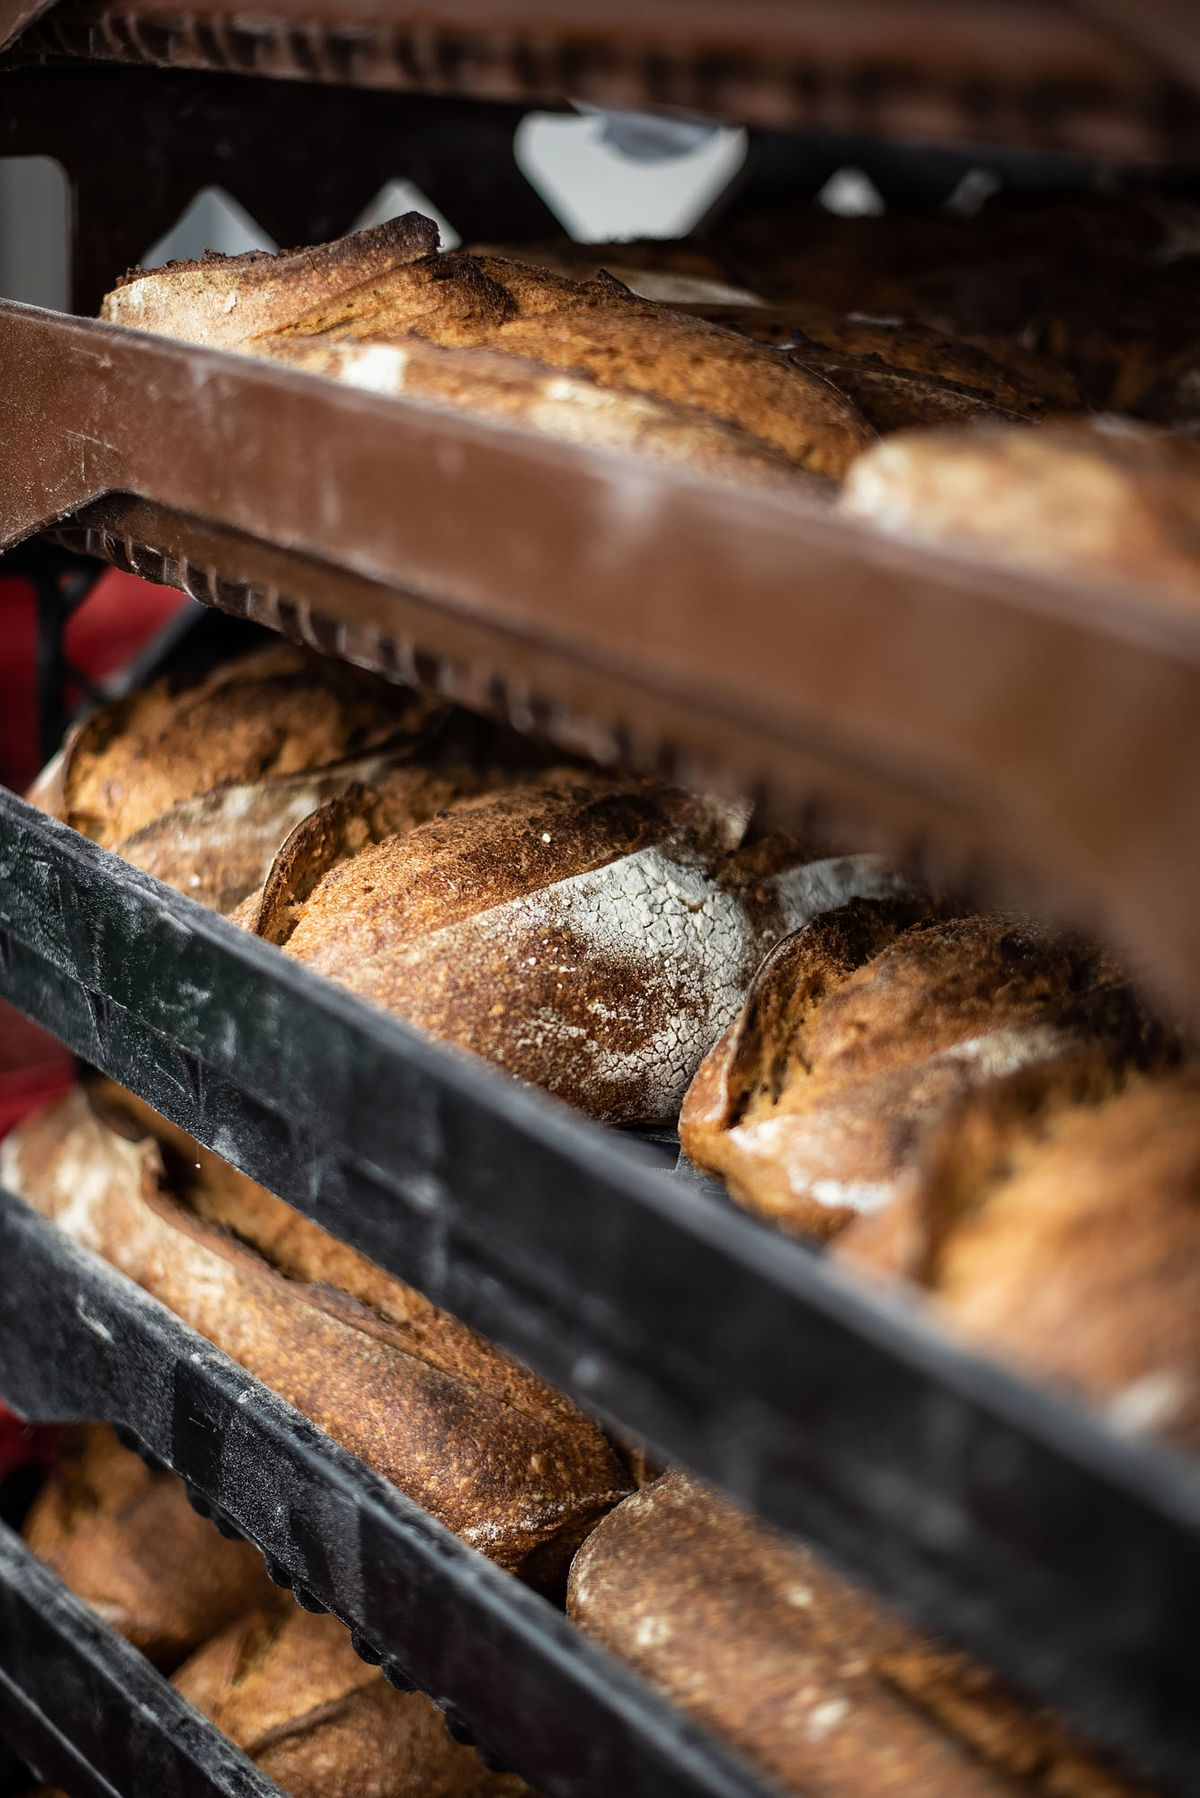 Wholesale breads cool on a rack.